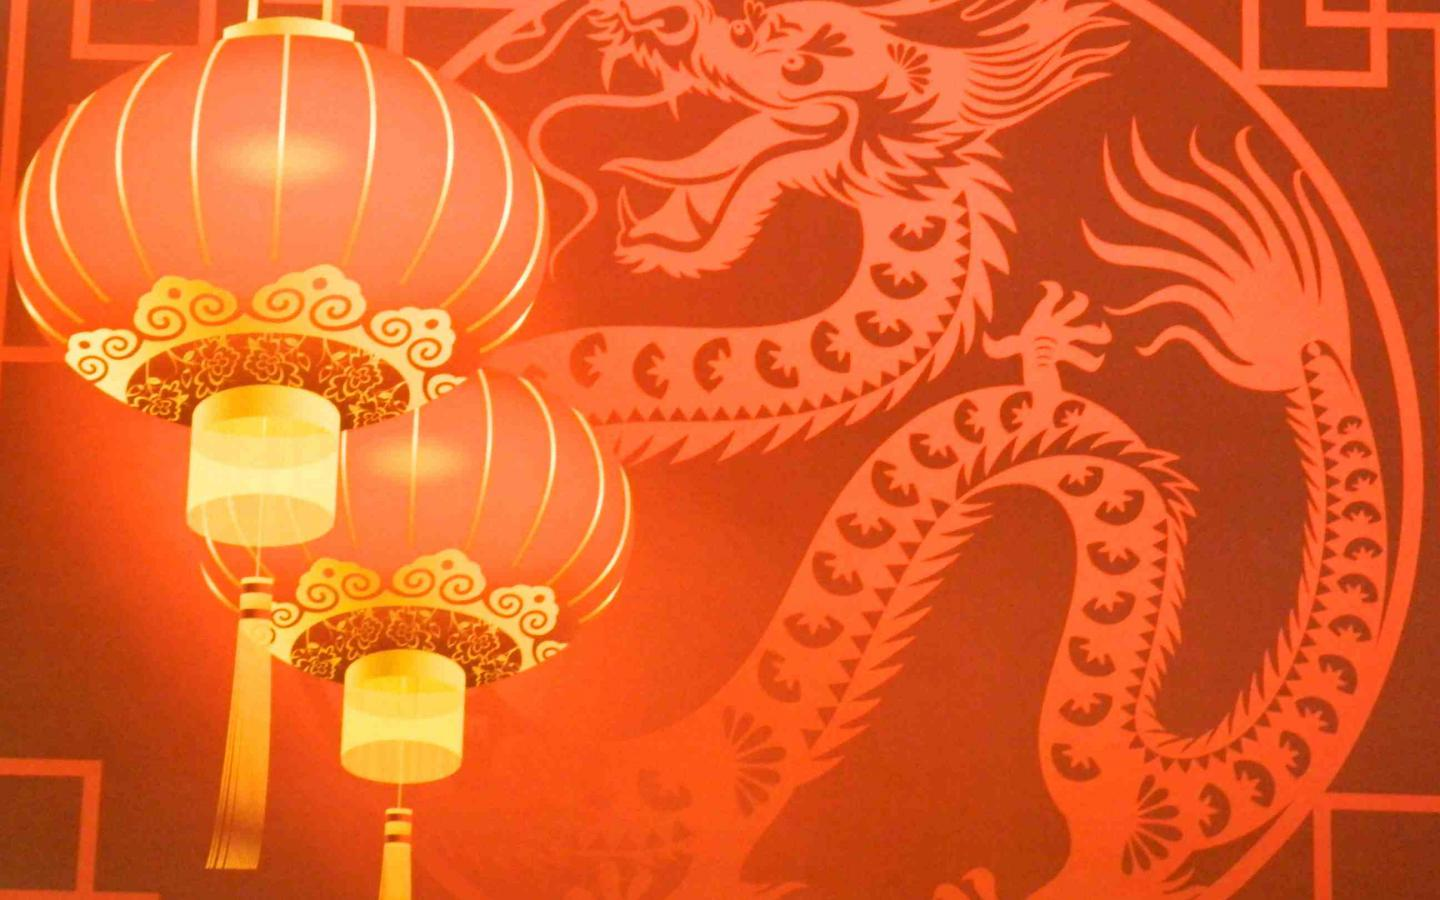 chinese new year card design with lantern and dragon picture hd 1440x900